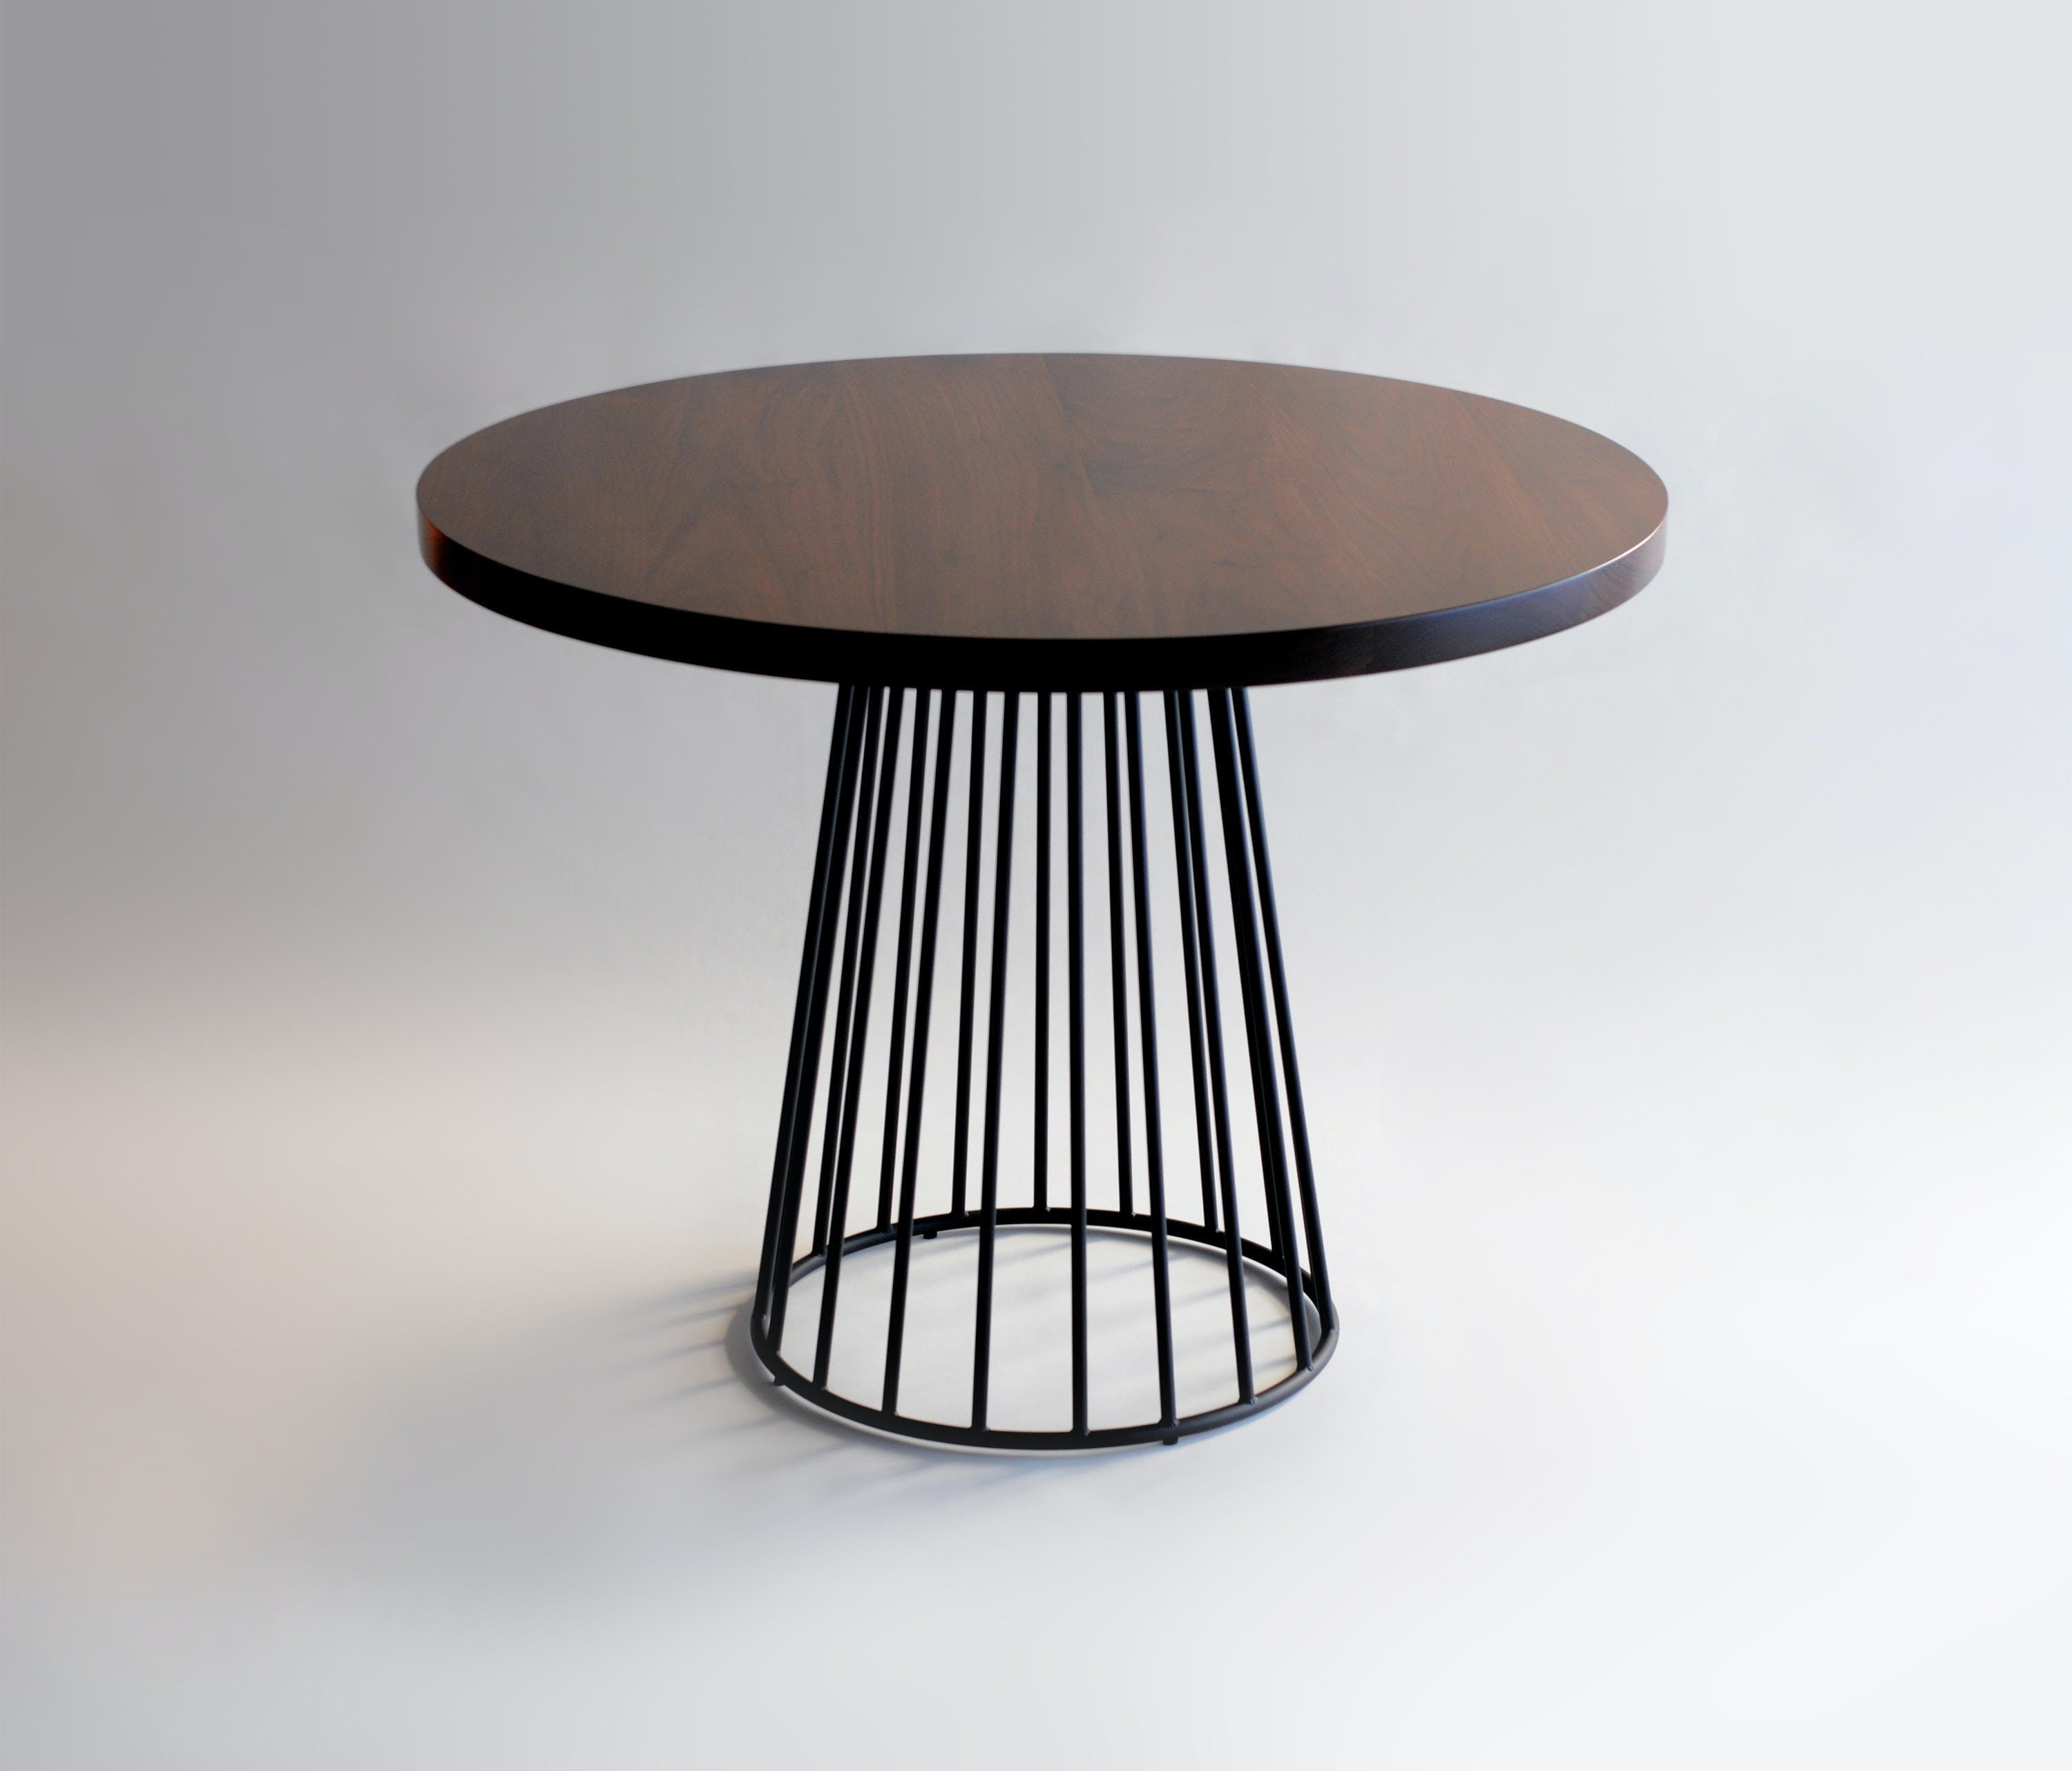 Phase Design Wired Cafe Table Haute Living